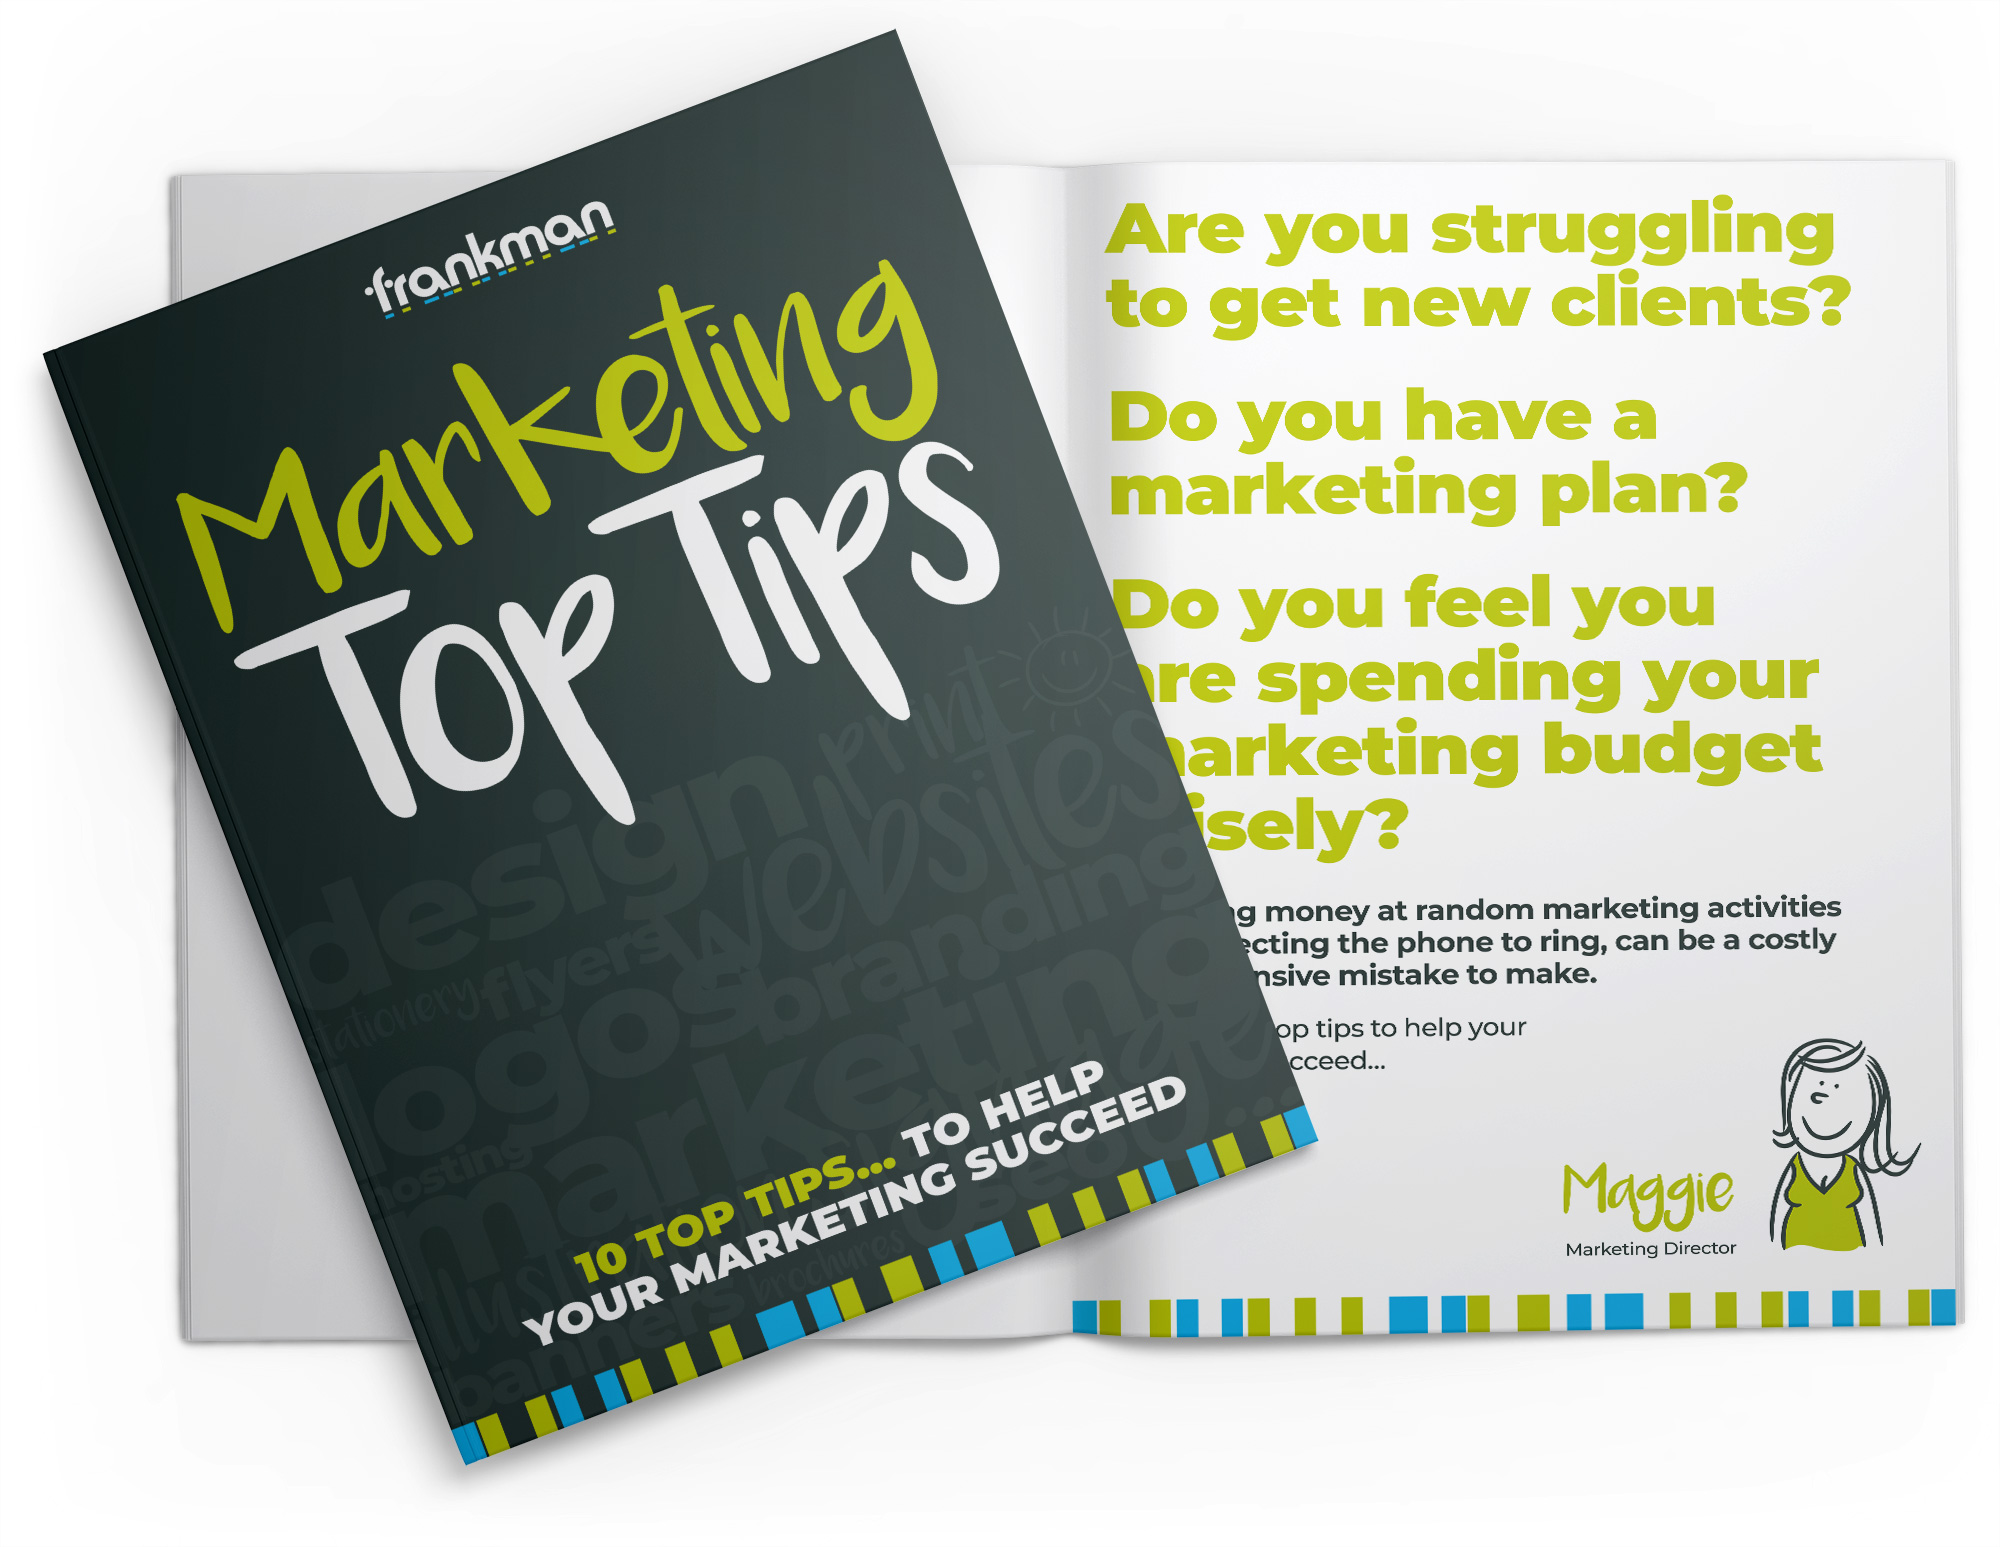 marketing-top-tips-from-frankman